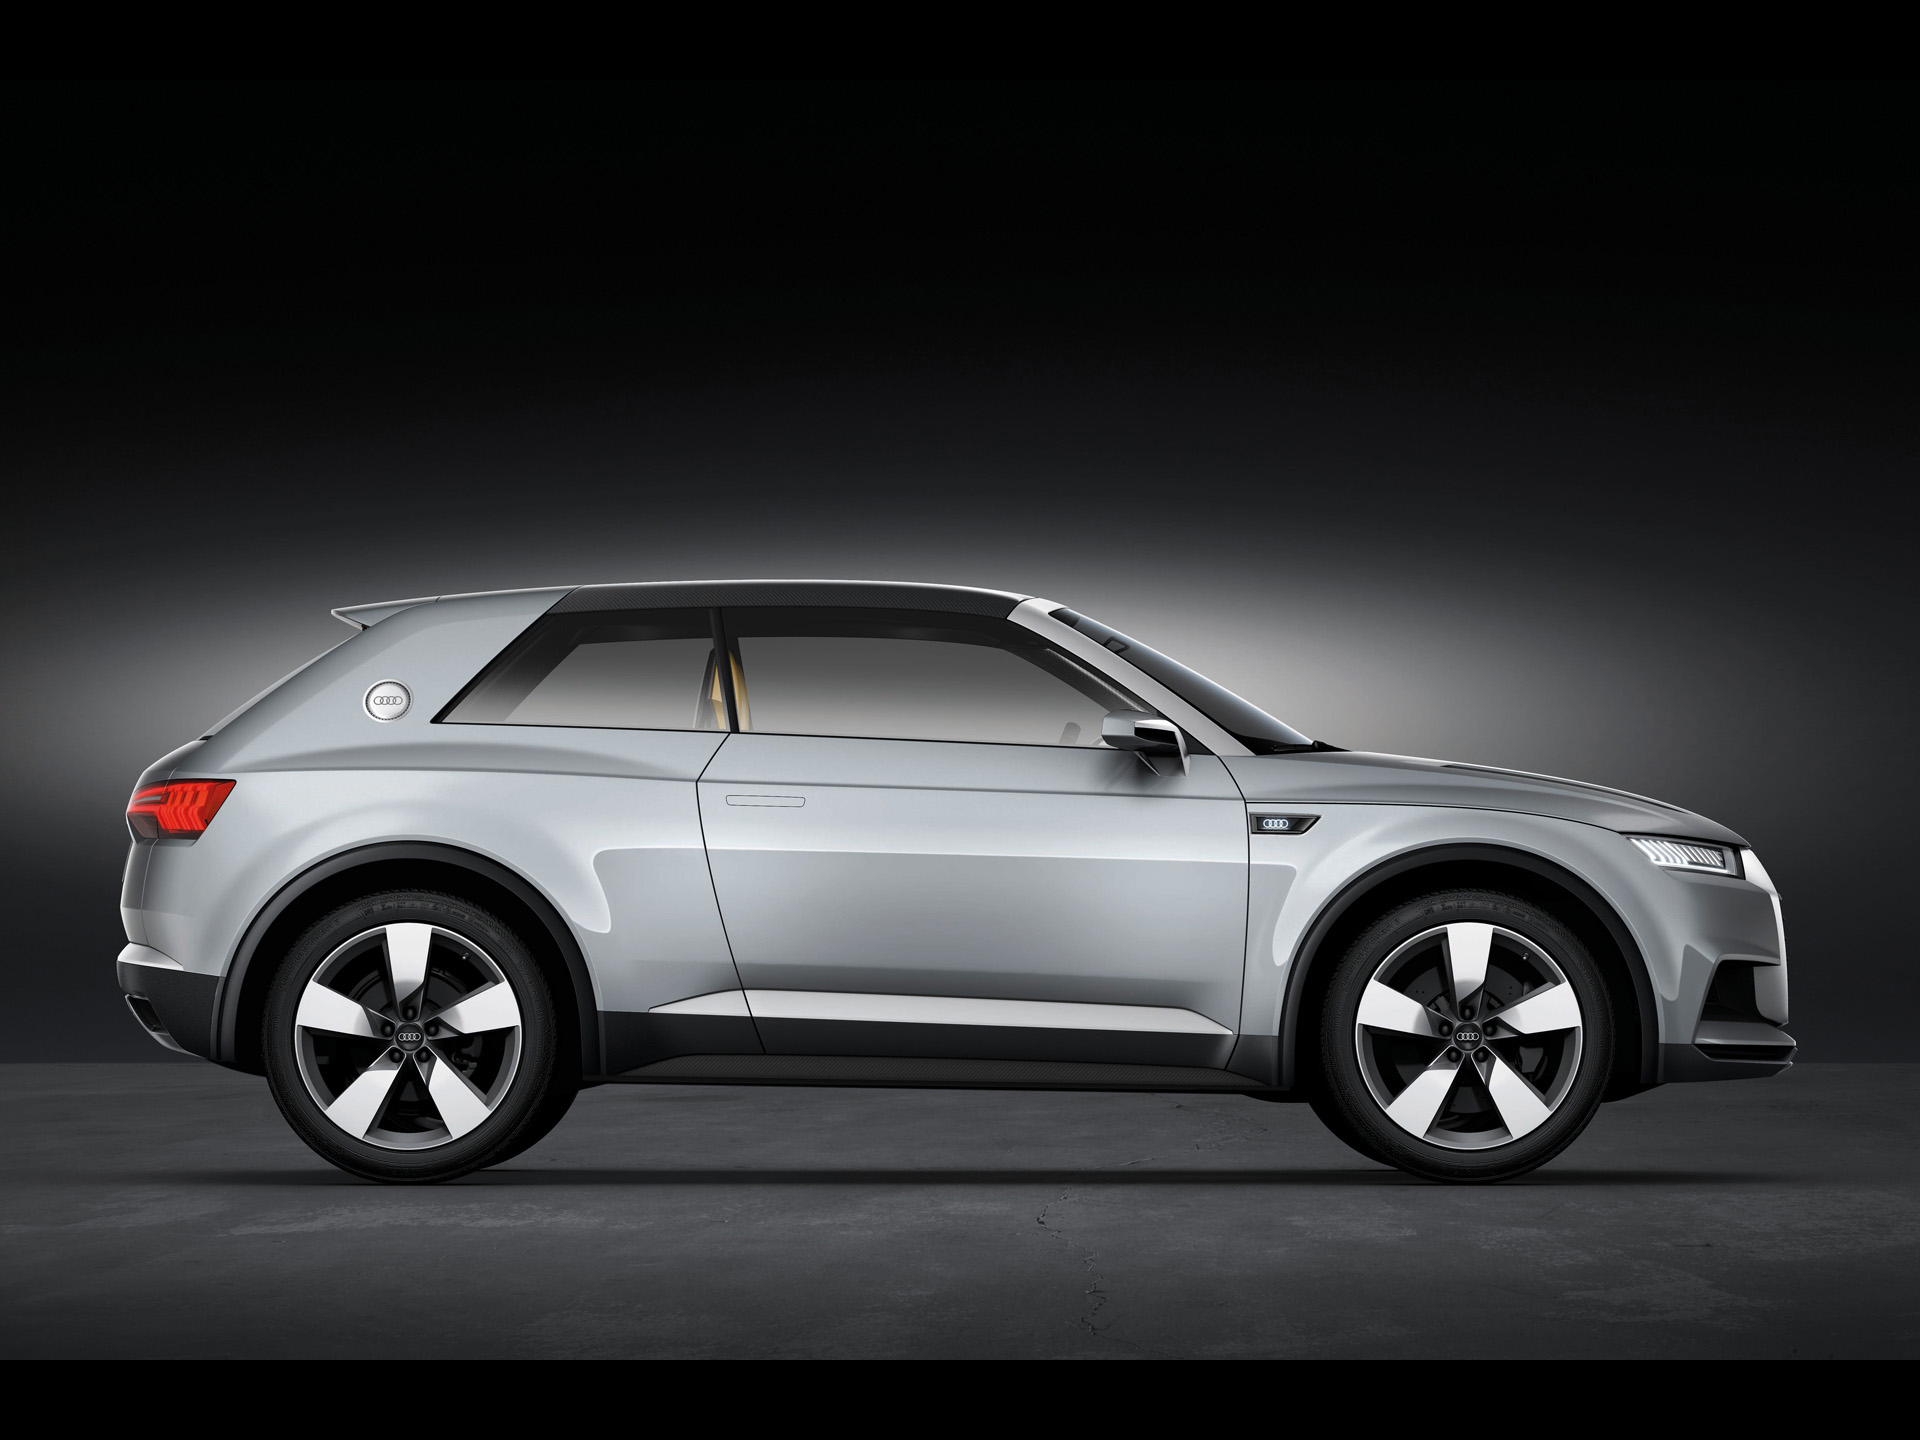 2018 Audi Cross Coupe quattro Concept photo - 4